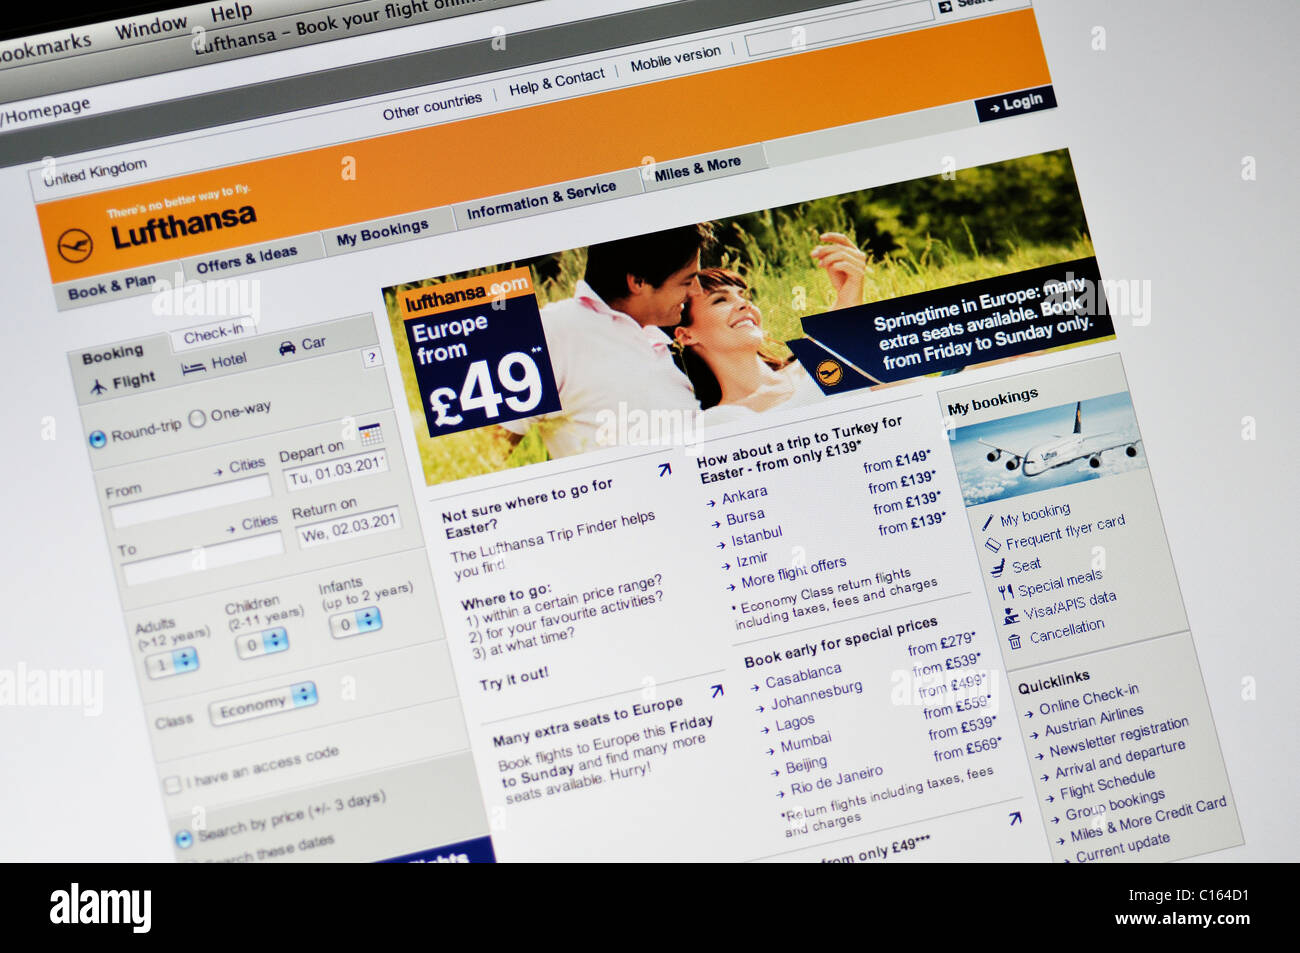 Lufthansa Airlines website - Stock Image